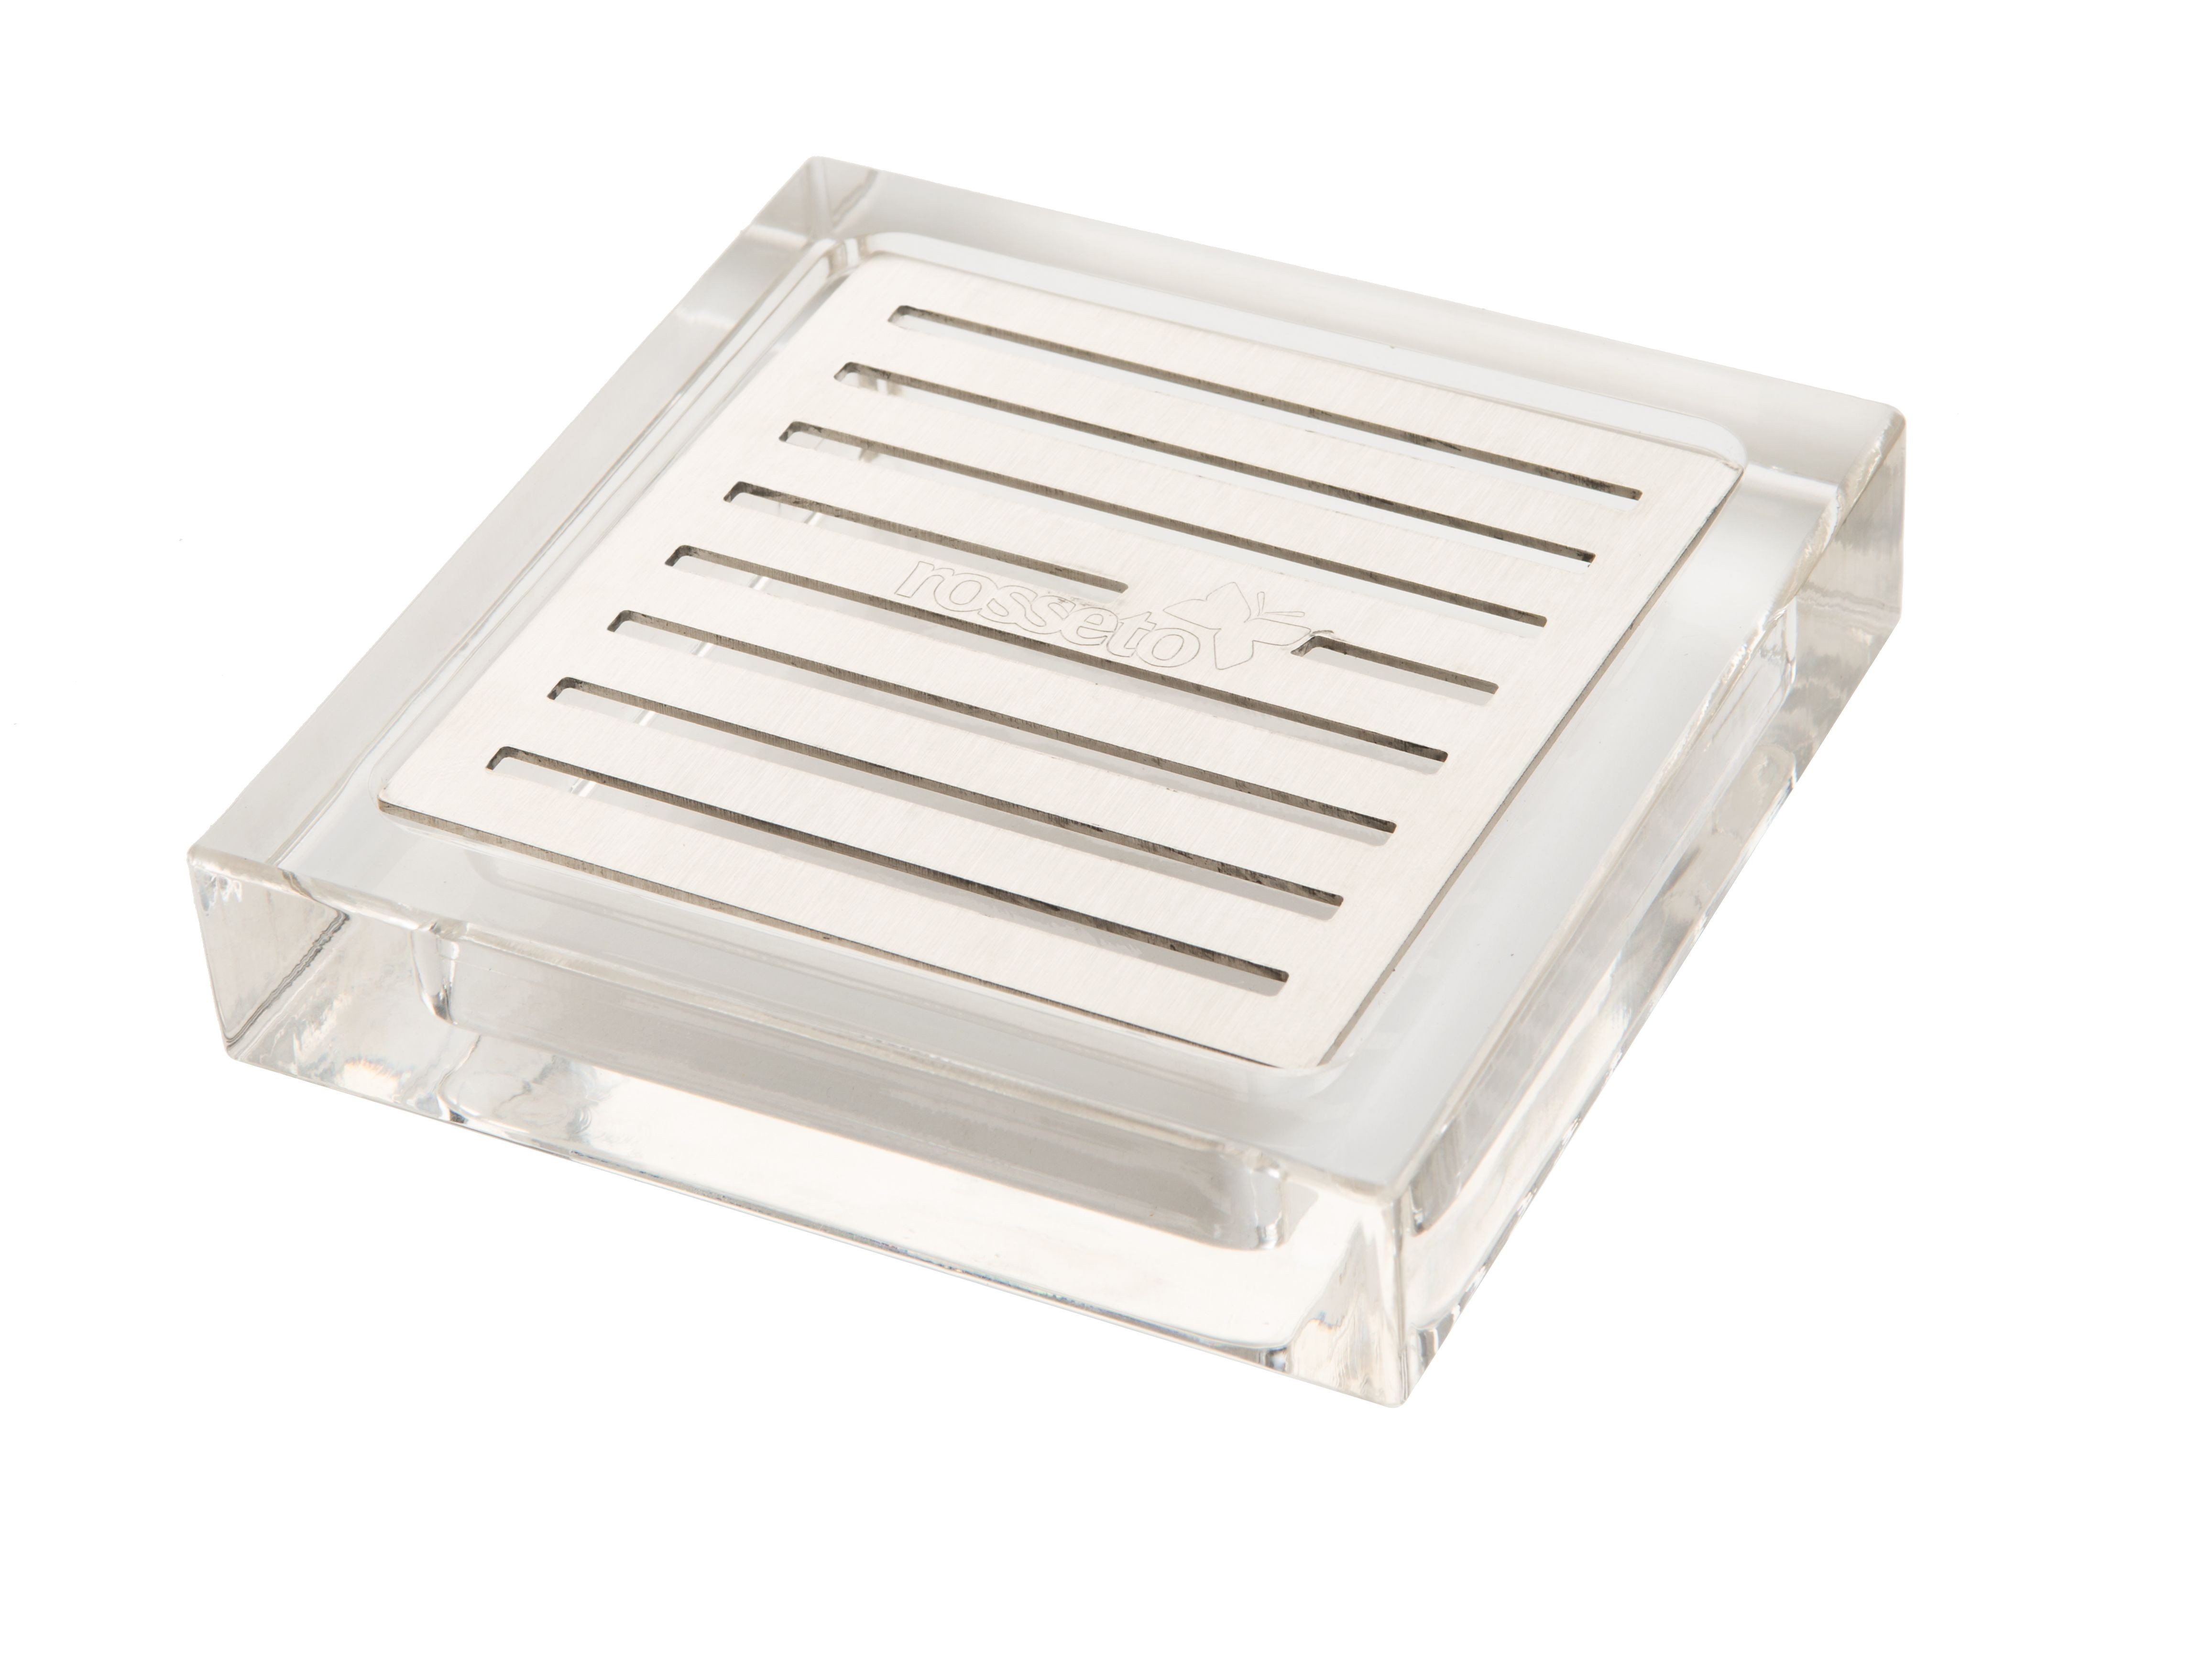 Rosseto LD108 Rosseto Square Acrylic Drip Tray With Stainless Steel Insert For Beverage Dispensers